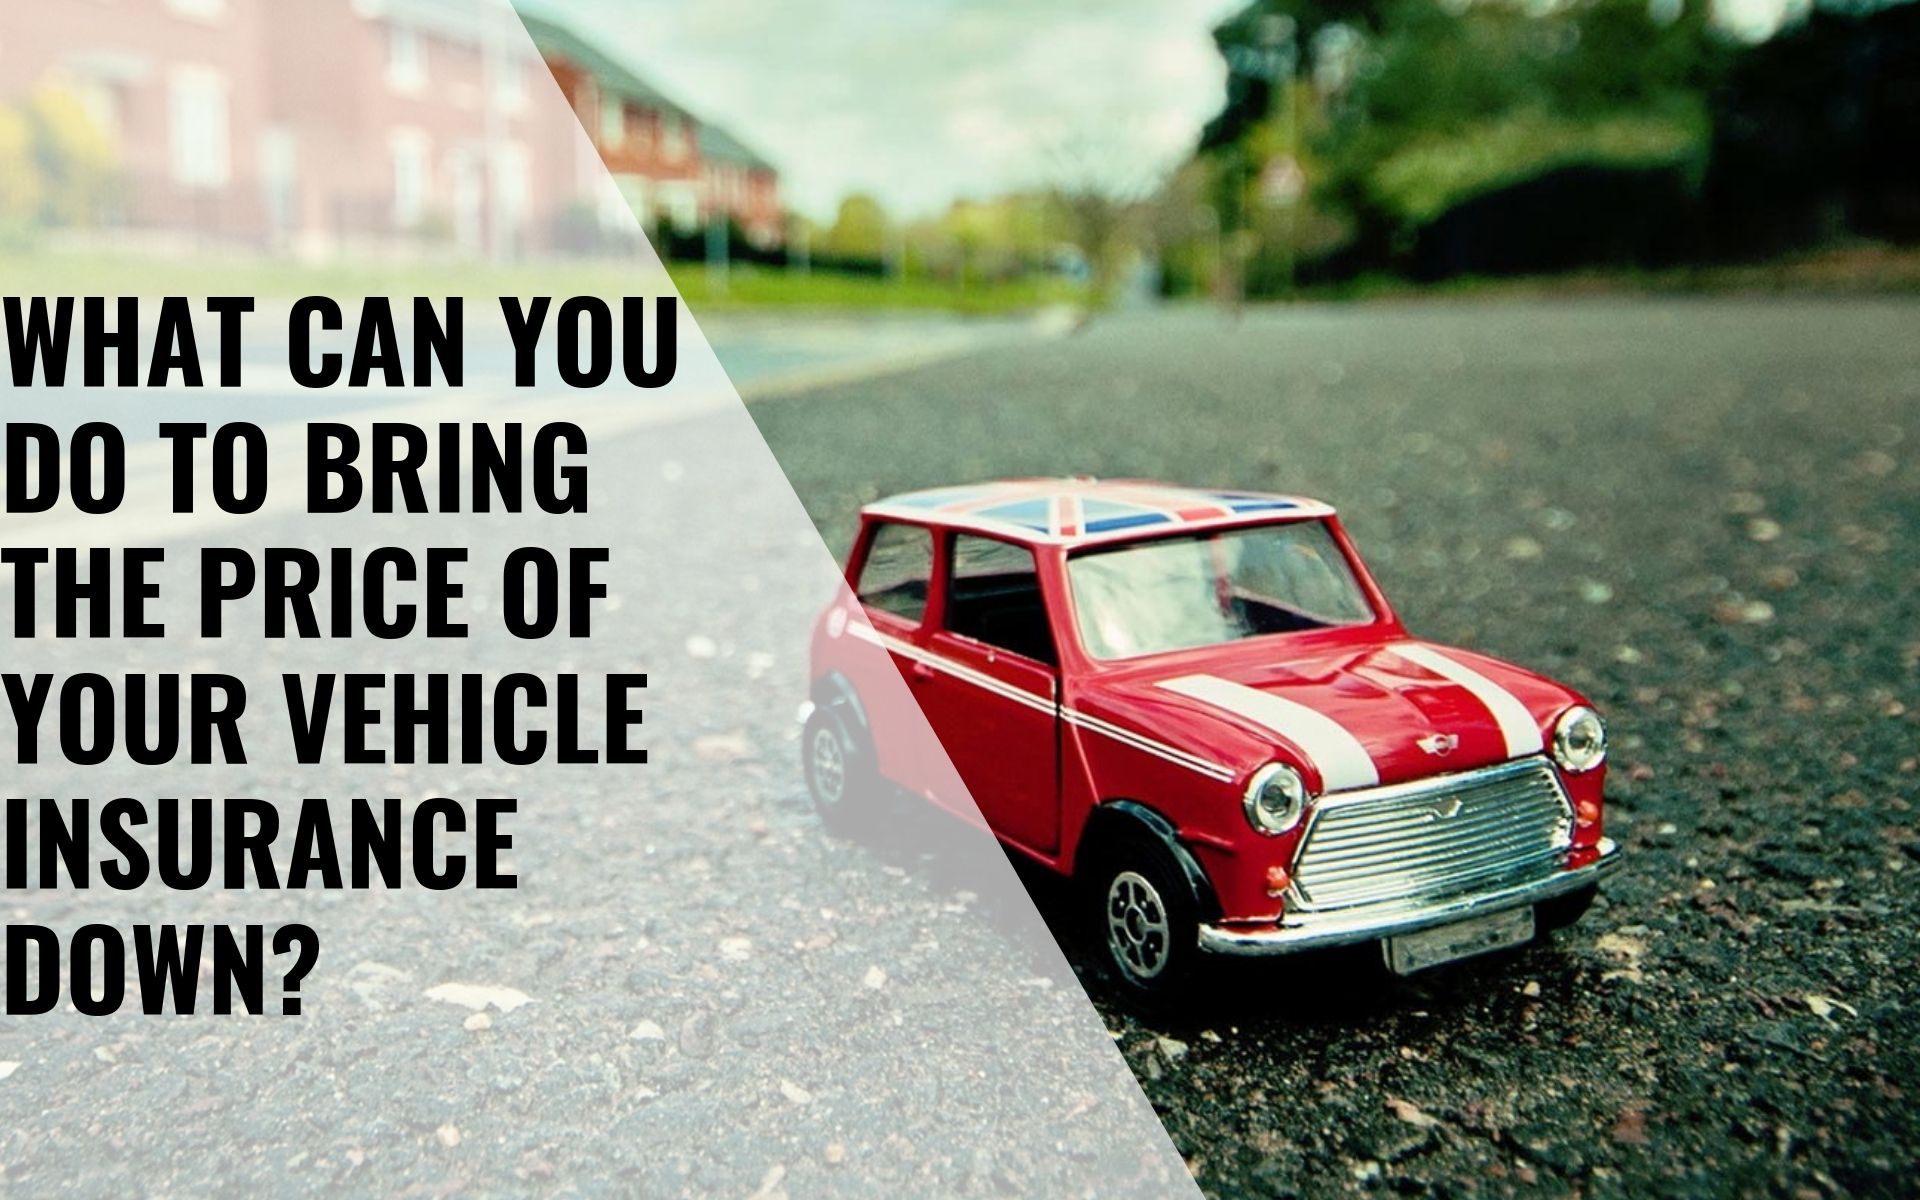 What Car You Do To Bring The Price Of Your Vehicle Insurance Down